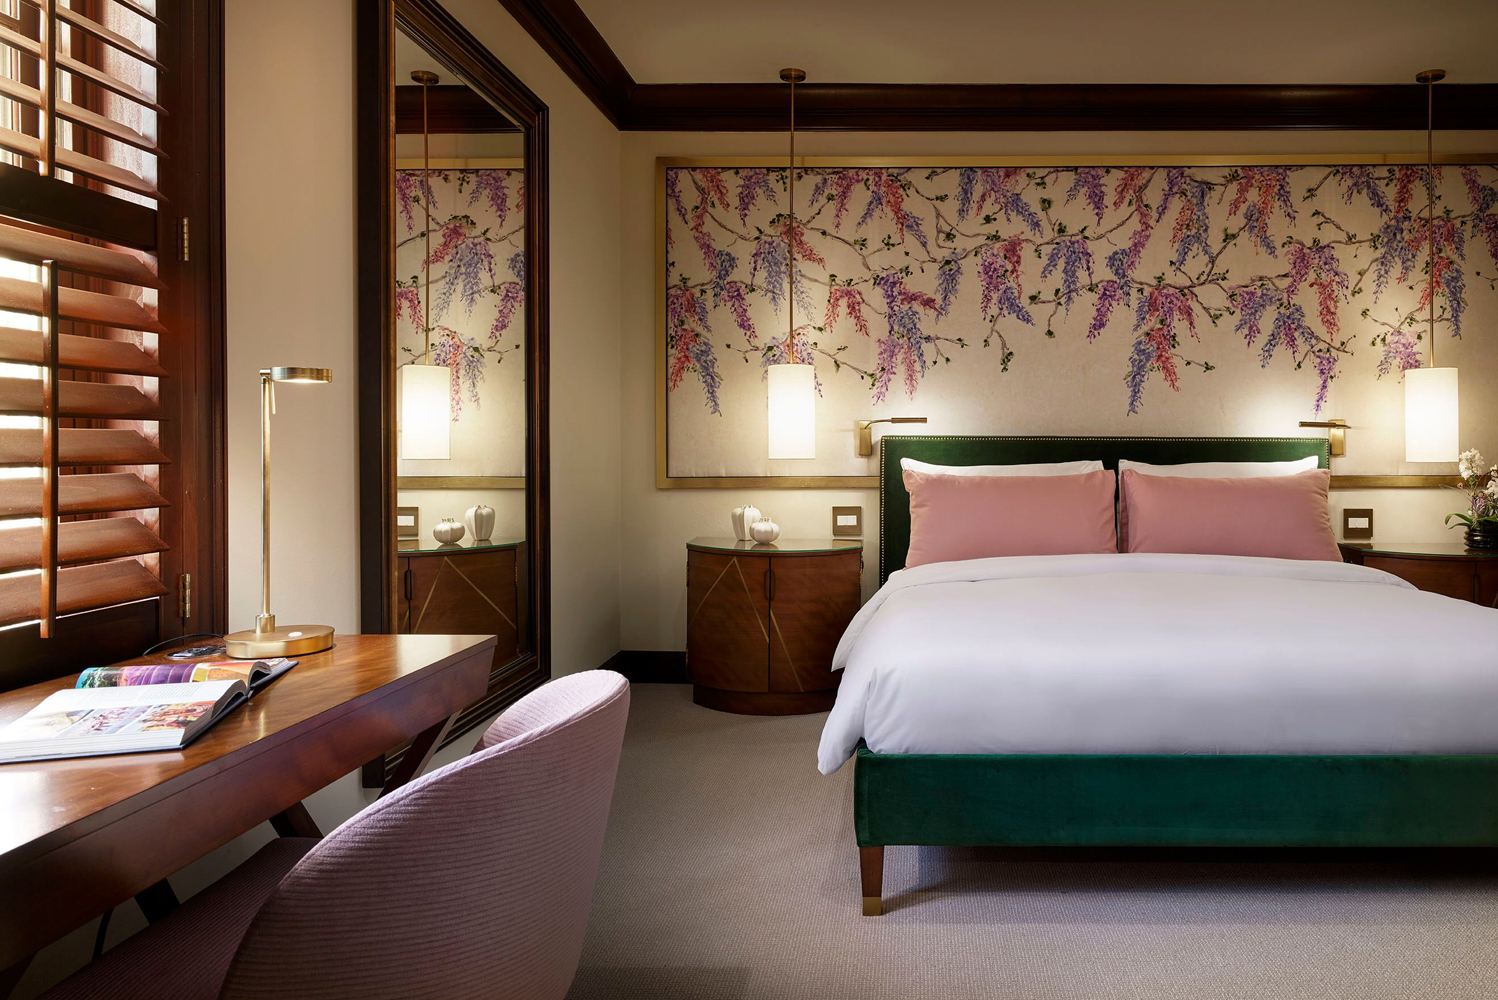 The new room style at Brazilian Court, which first opened in 1926, embodies a playful take on Palm Beach sophistication.